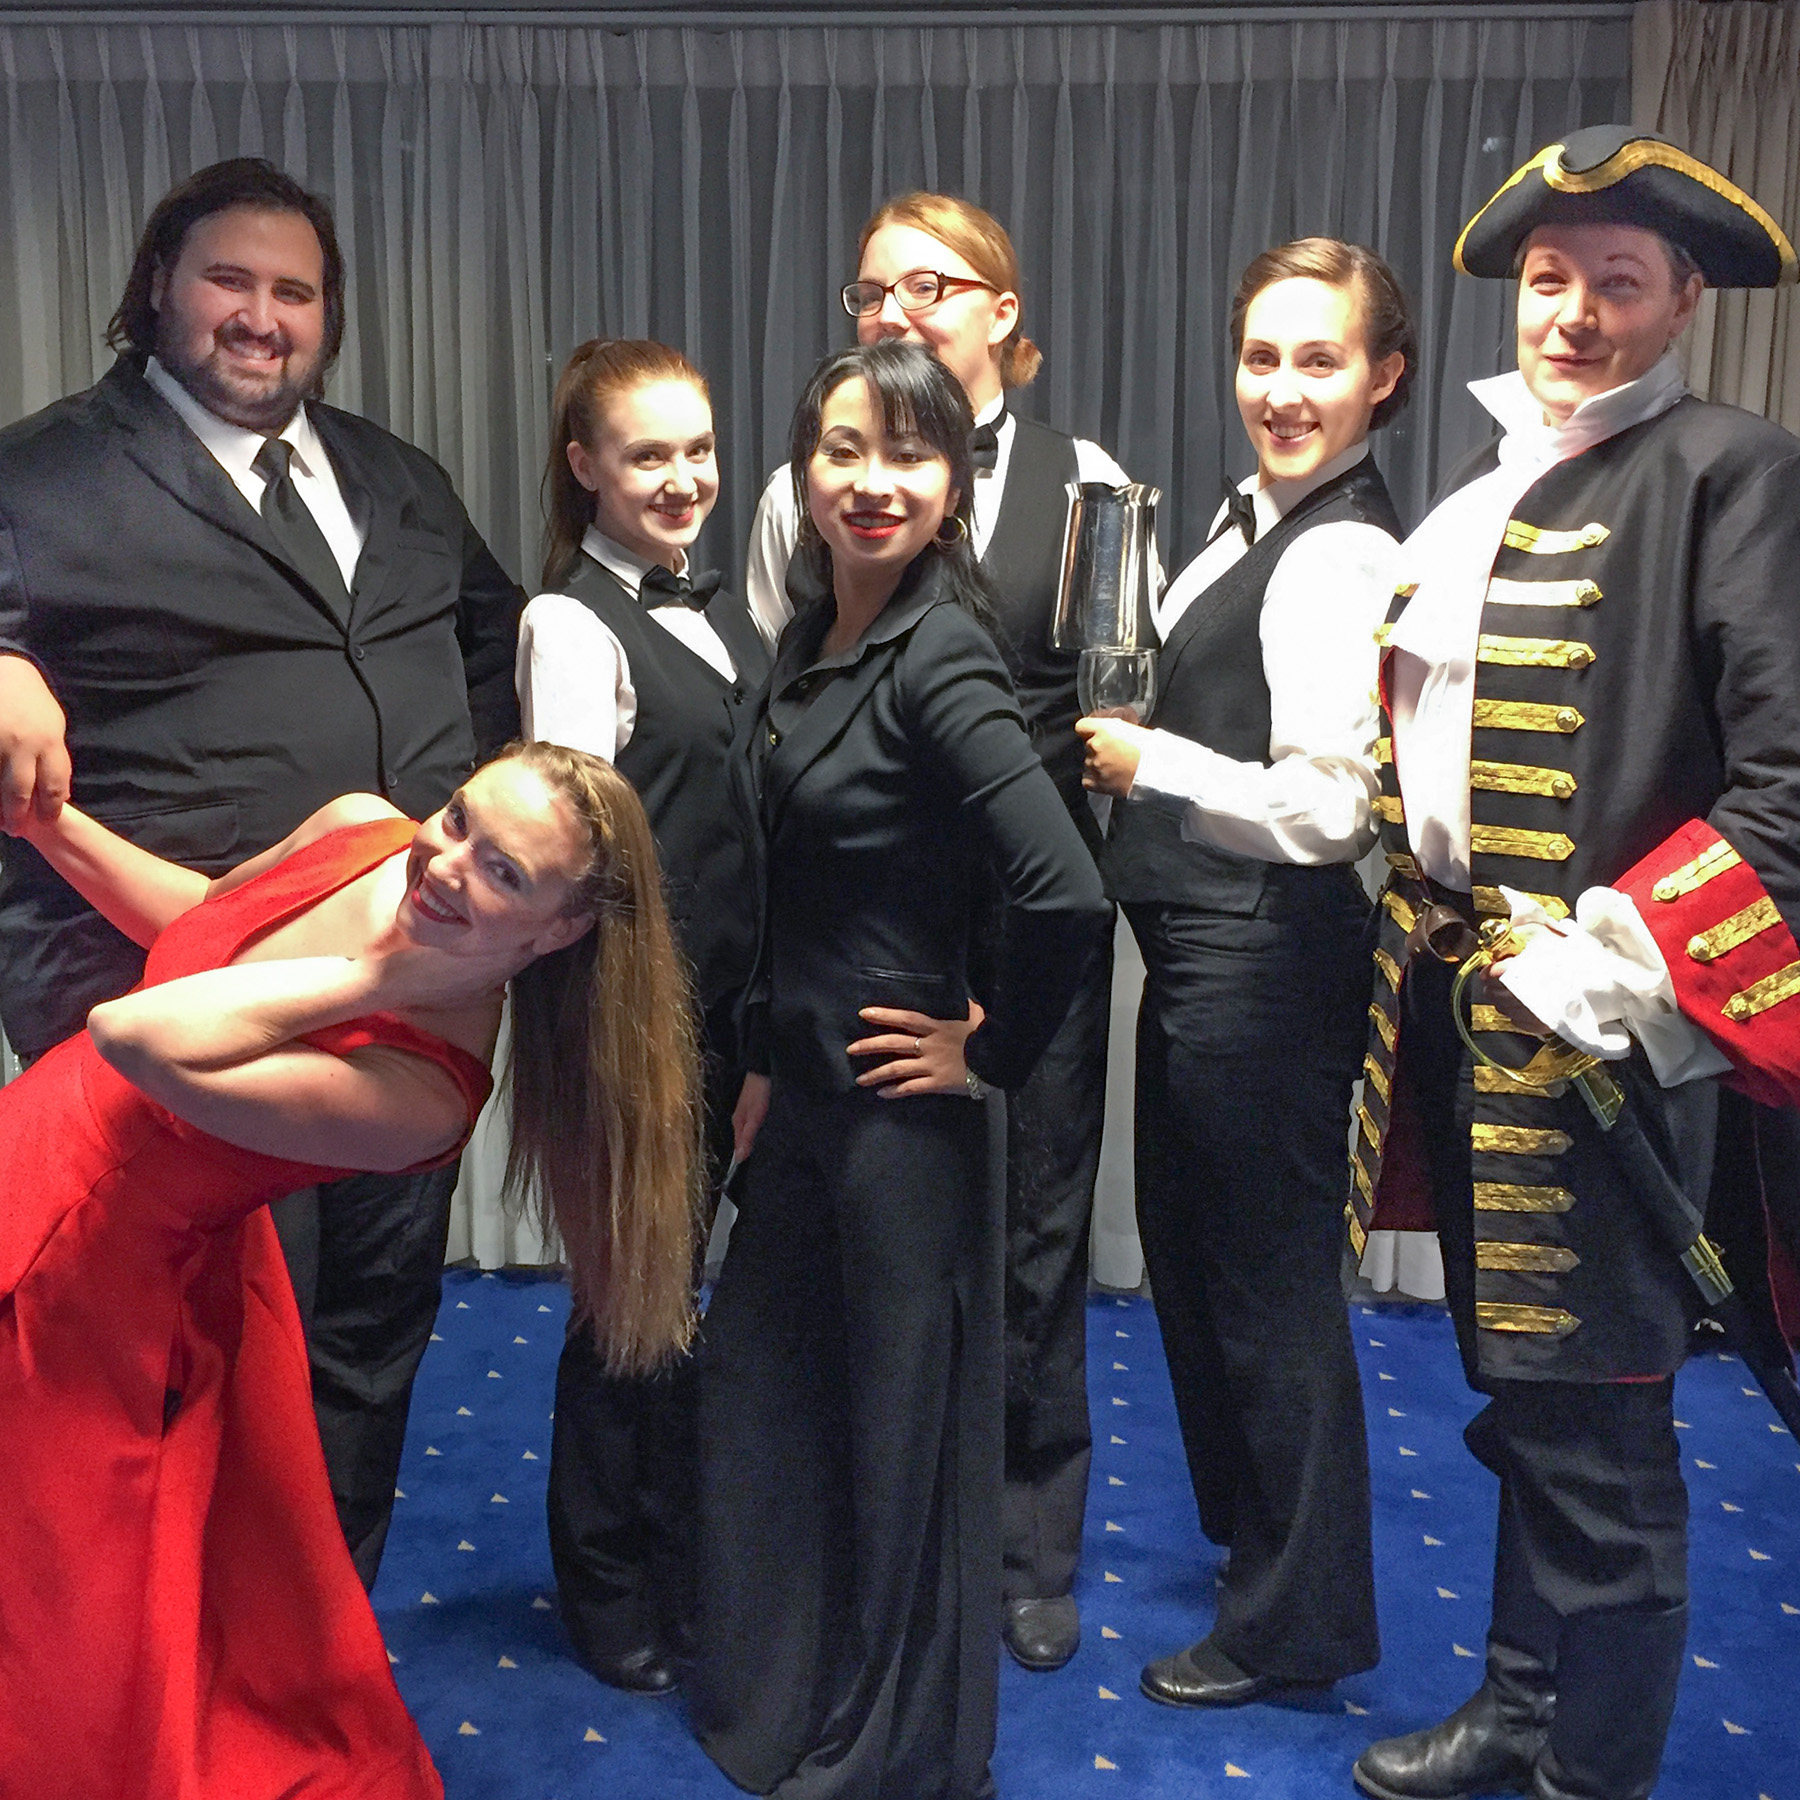 A group of performs with diverse races, body types and gender presentations are dressed as waiters, and holding serving ware. They stand in a hotel room, and smile at the camera. Two of them are dressed differently: one in a red dress, and another in a fancy military uniform.